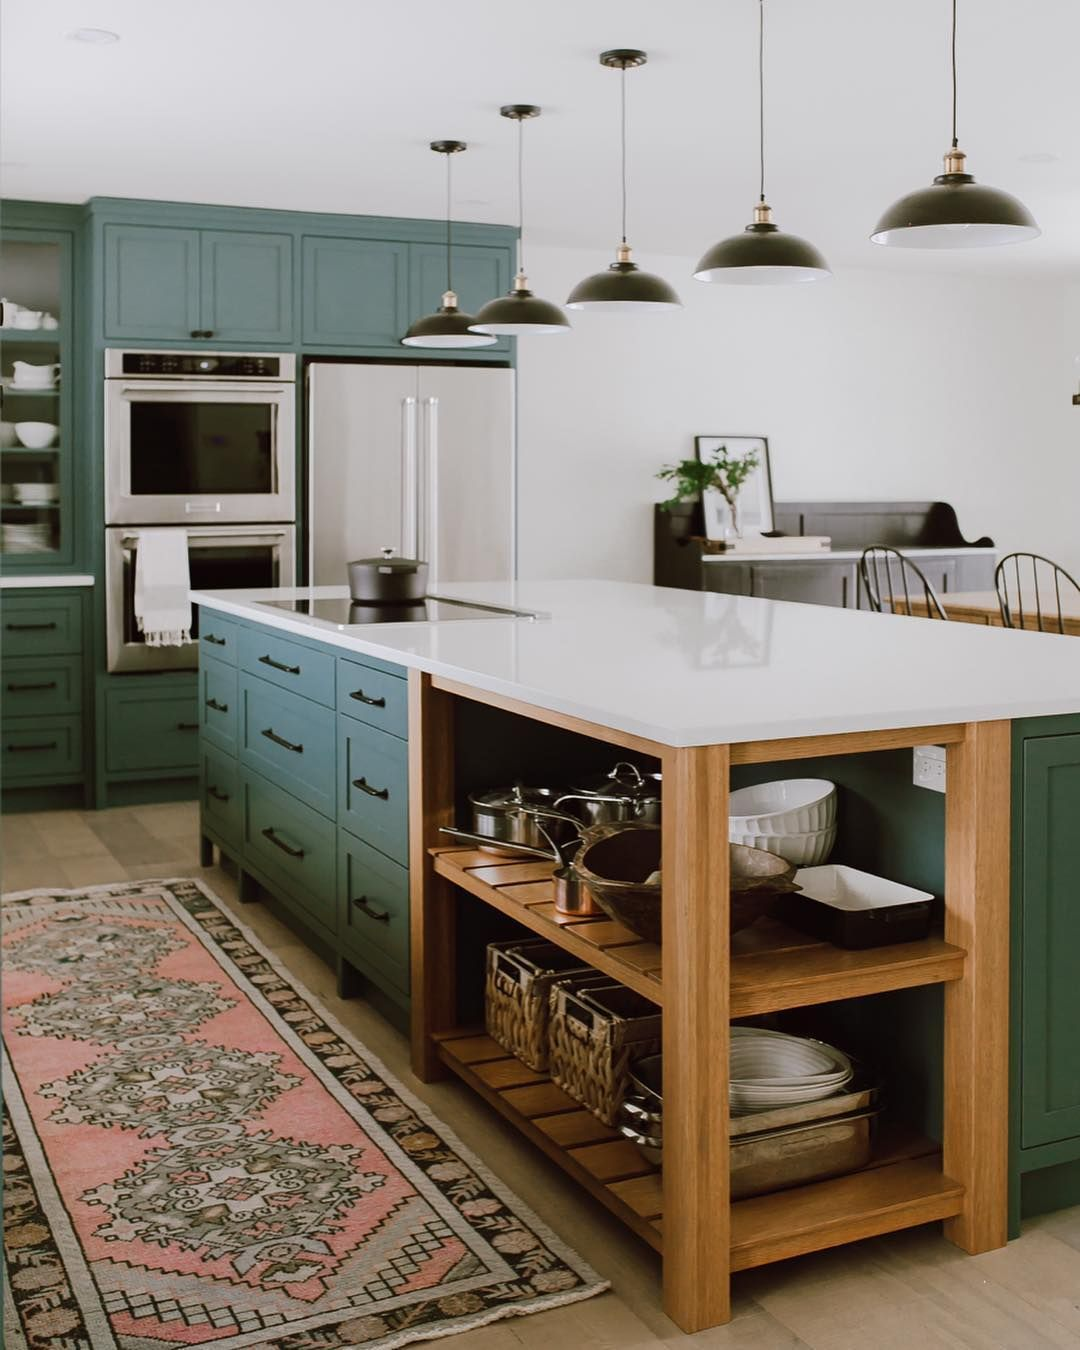 White Kitchens Have Their Place But These Might Just Be Better New Kitchen Cabinets Kitchen Style Kitchen Design